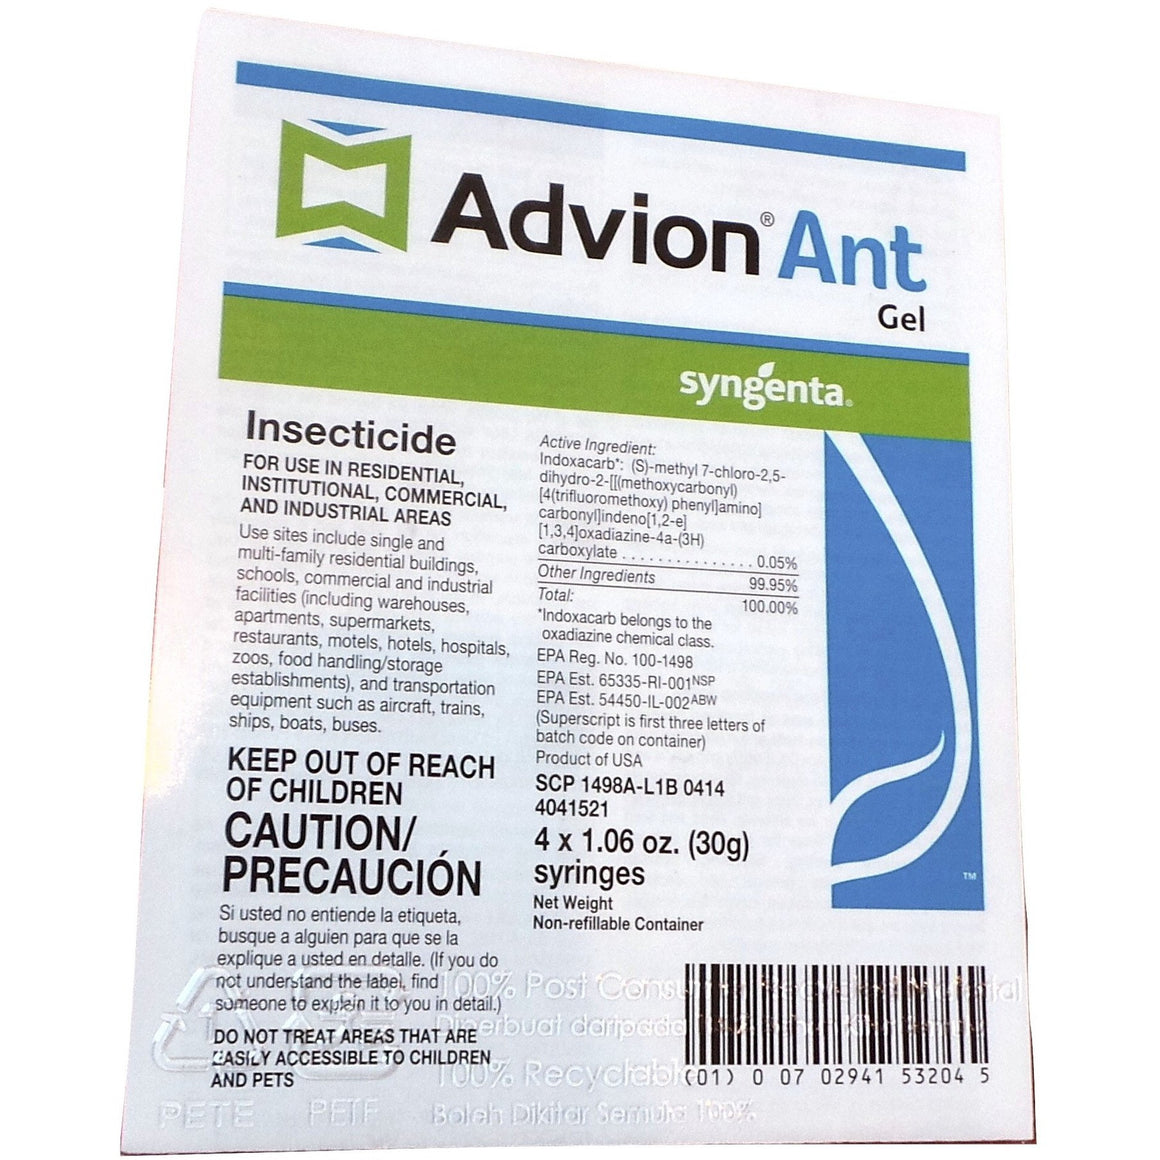 Advion Ant Gel Bait Insecticide - 4 x 1.06 Oz. Syringes